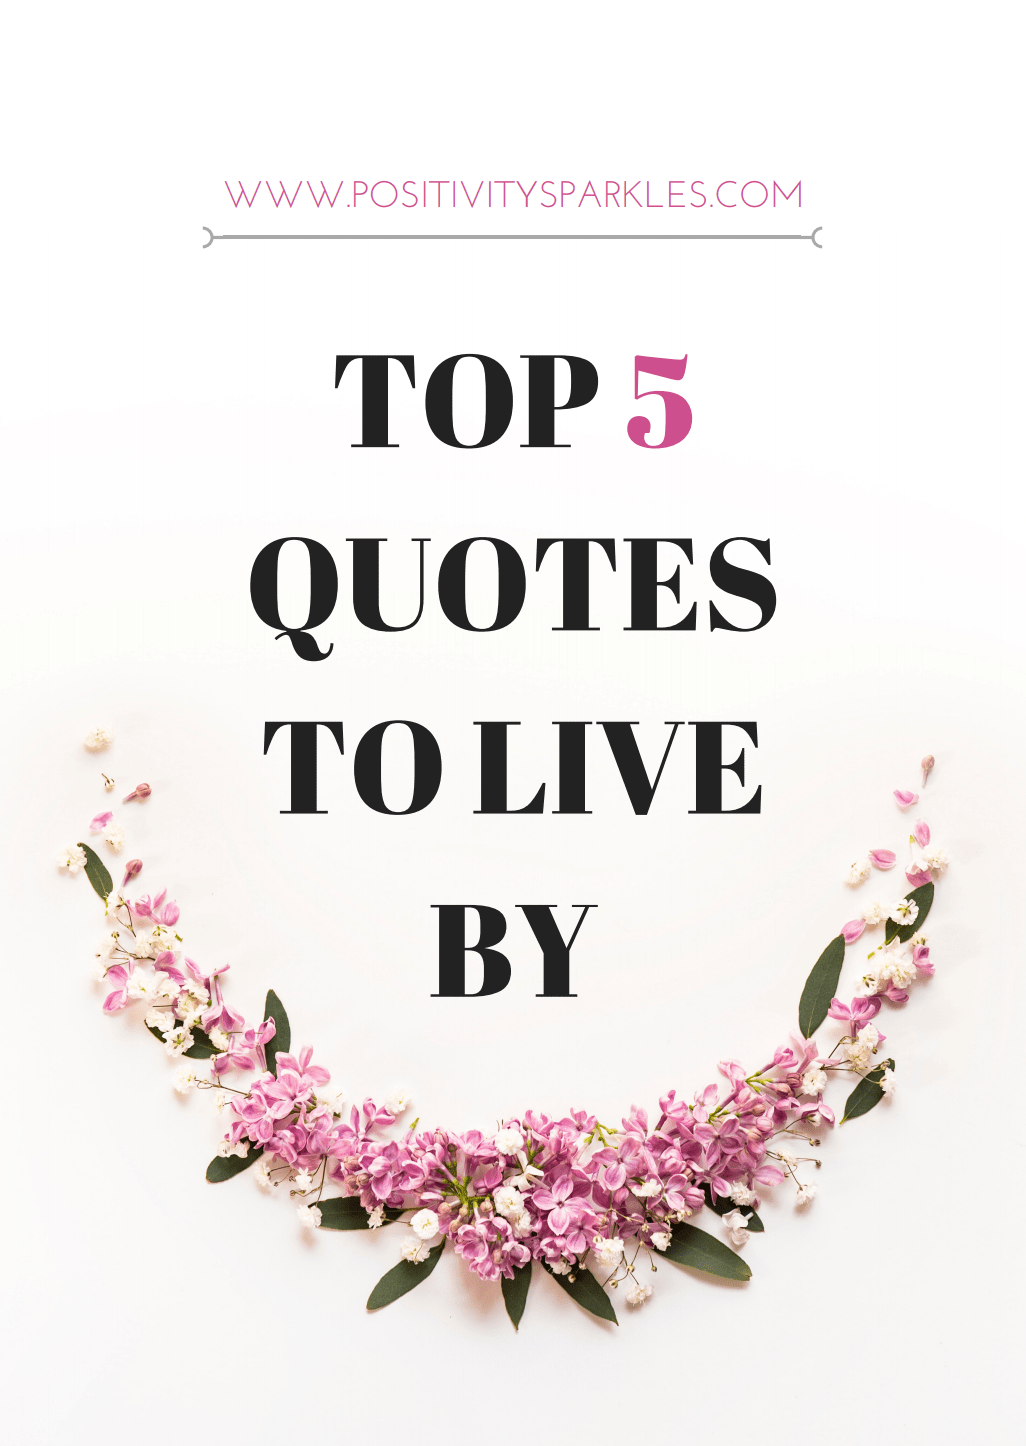 Here are the top 5 quotes to live by visit www positivitysparkles com for more quotes and inspiration lifequotes bestquotes bestquotesever lifequote